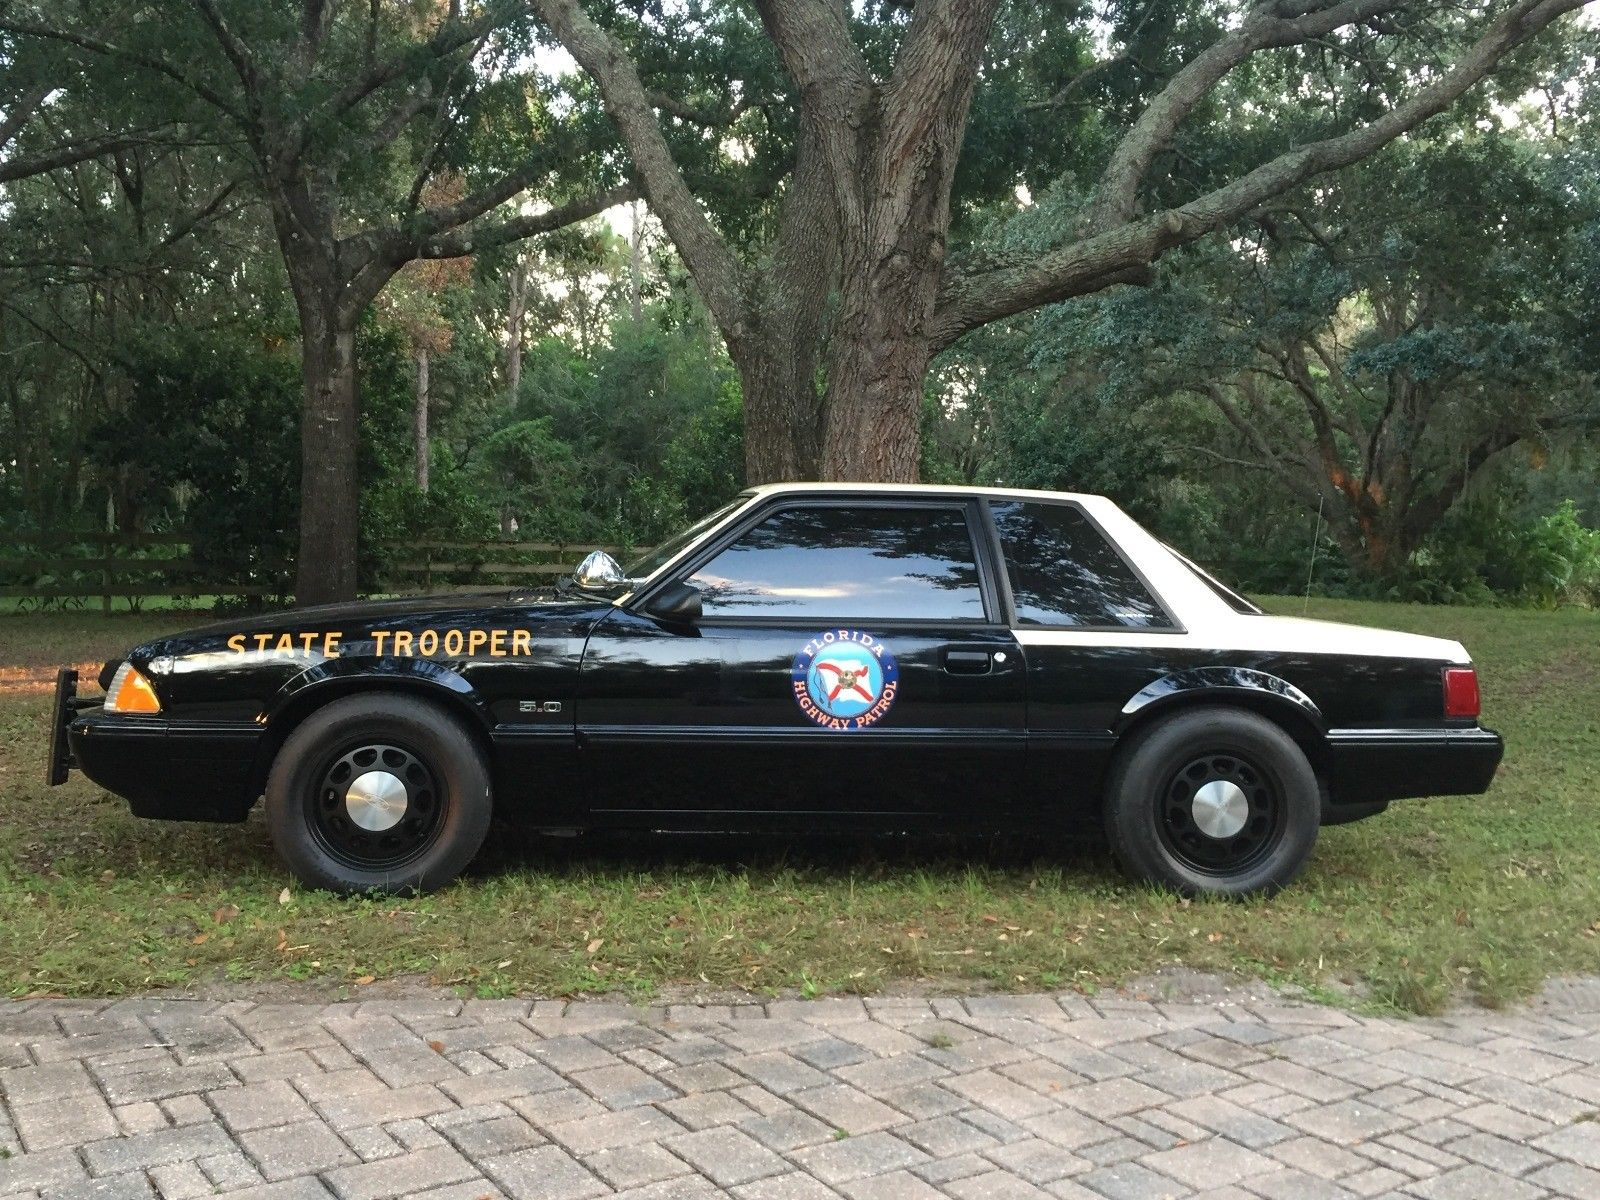 Great 1992 ford mustang lx 1992 ford mustang lx 5 0 coupe florida highway patrol car ssp fhp collector gt 2018 2019